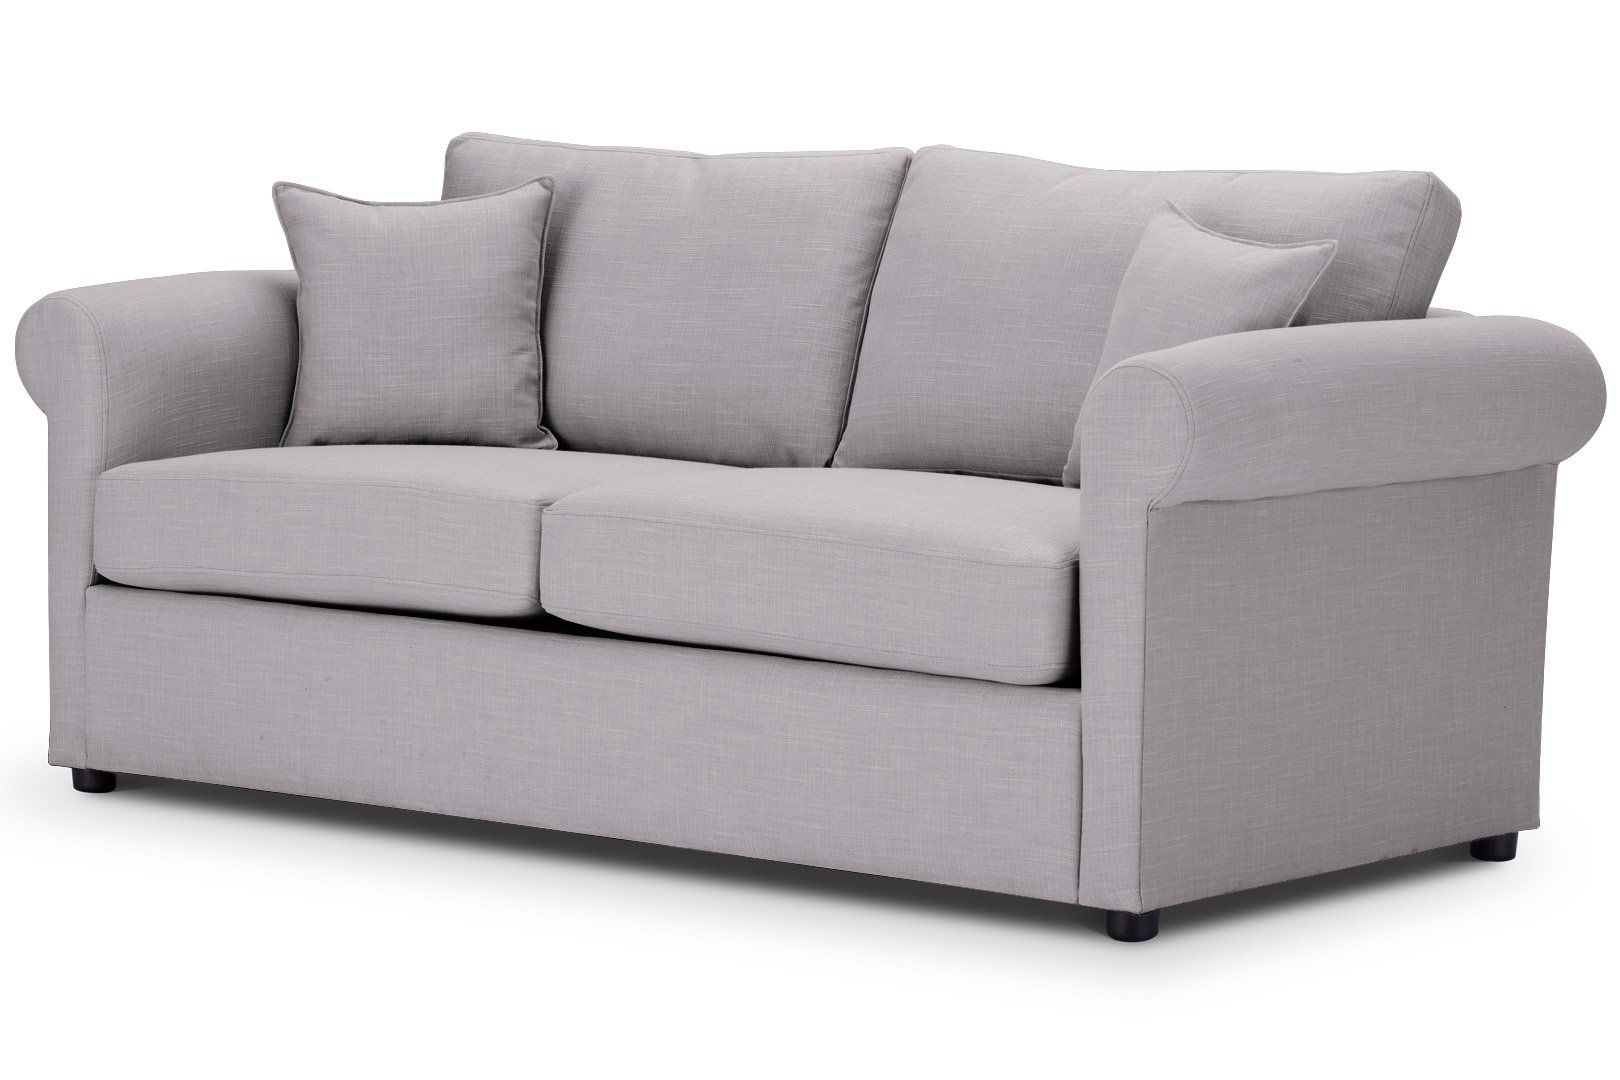 Sofa Bed Rounded arms in Emporio LINEN Fabric